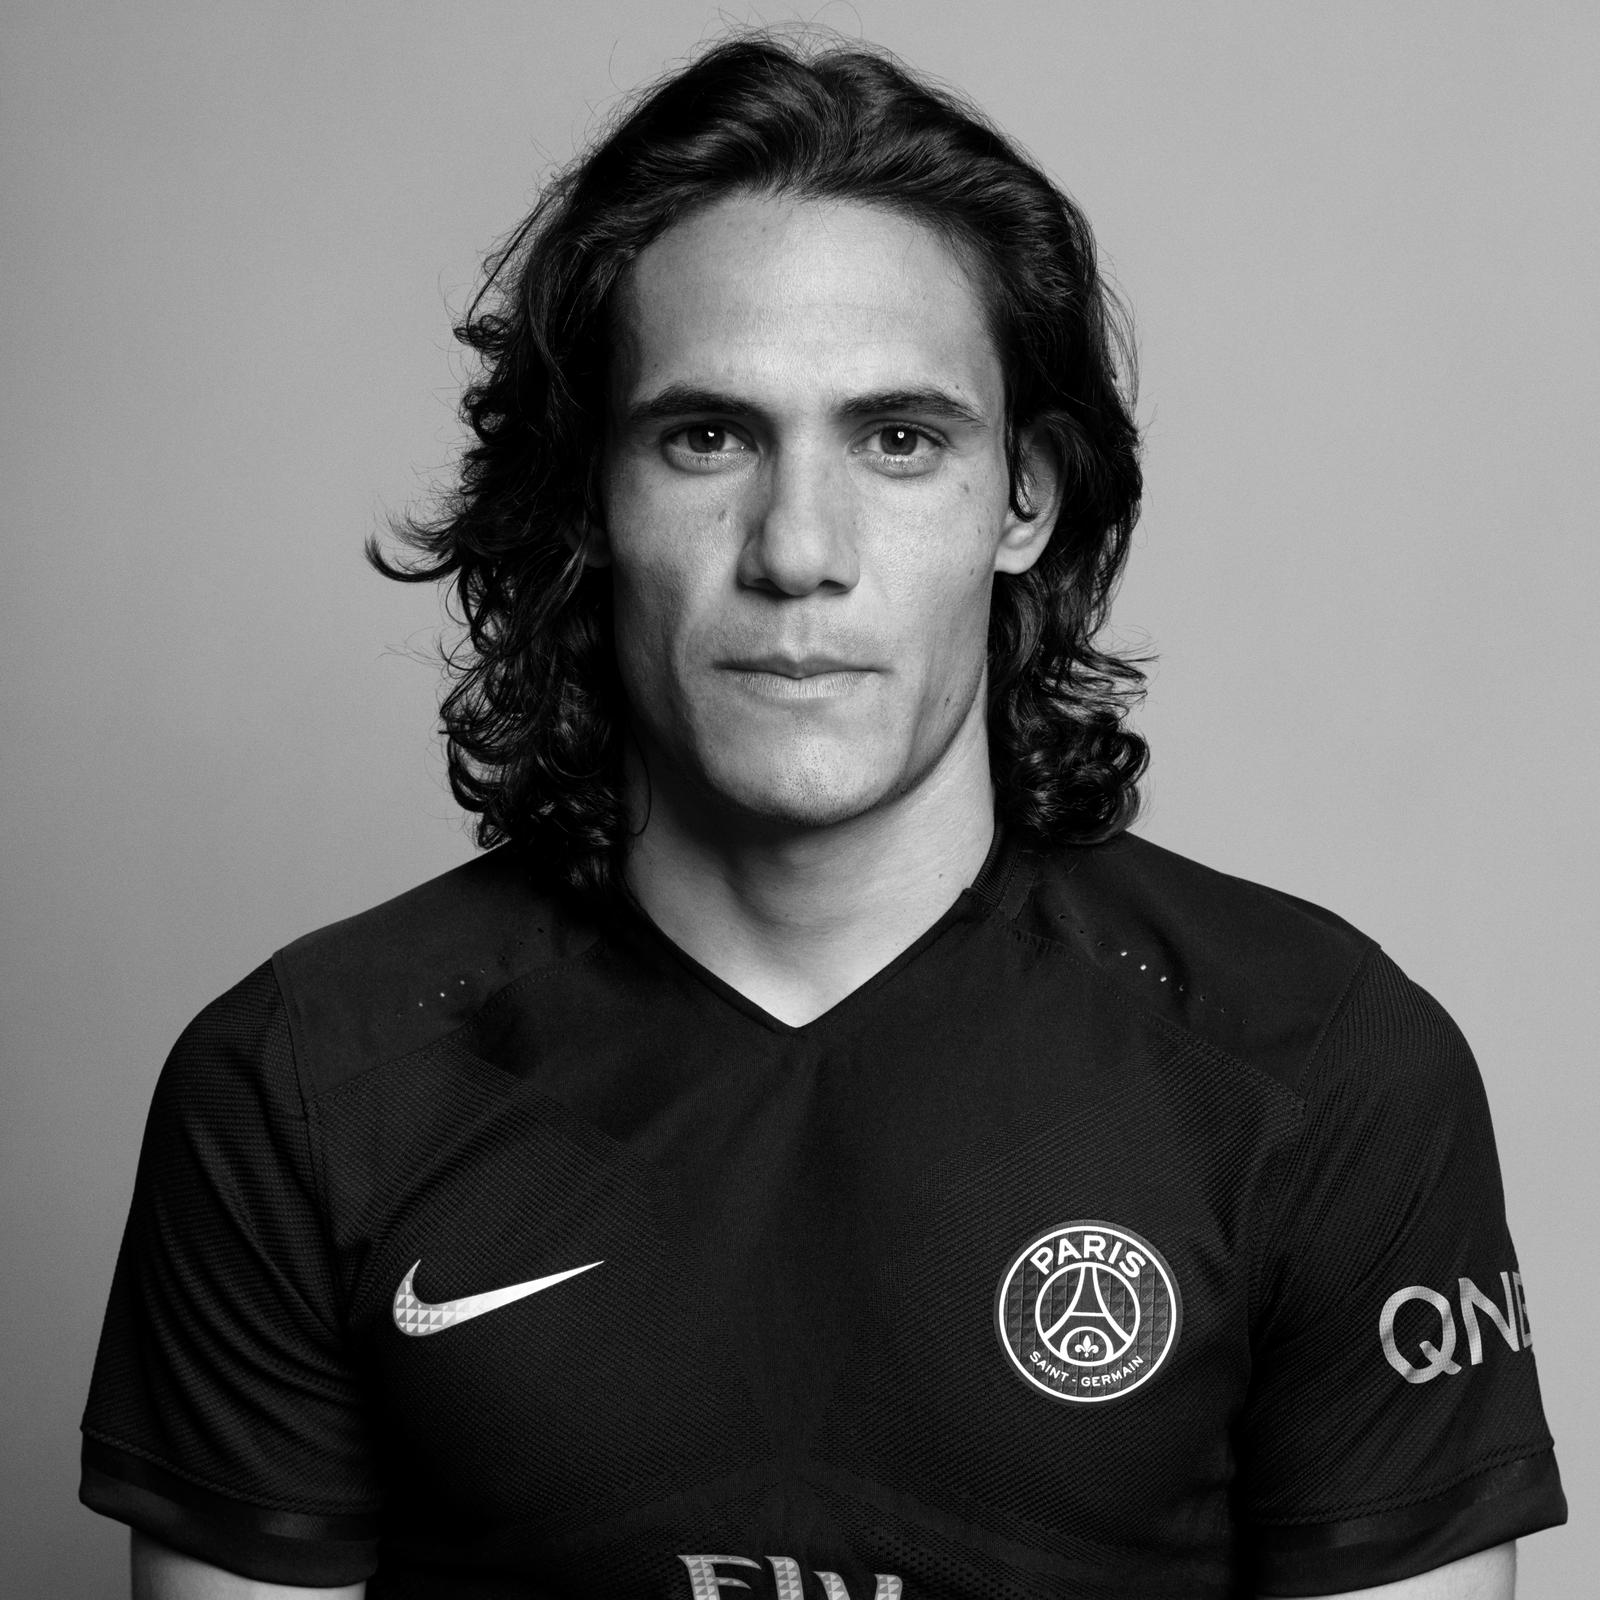 Psg darklight cavani01 0011 original original porto square 1600